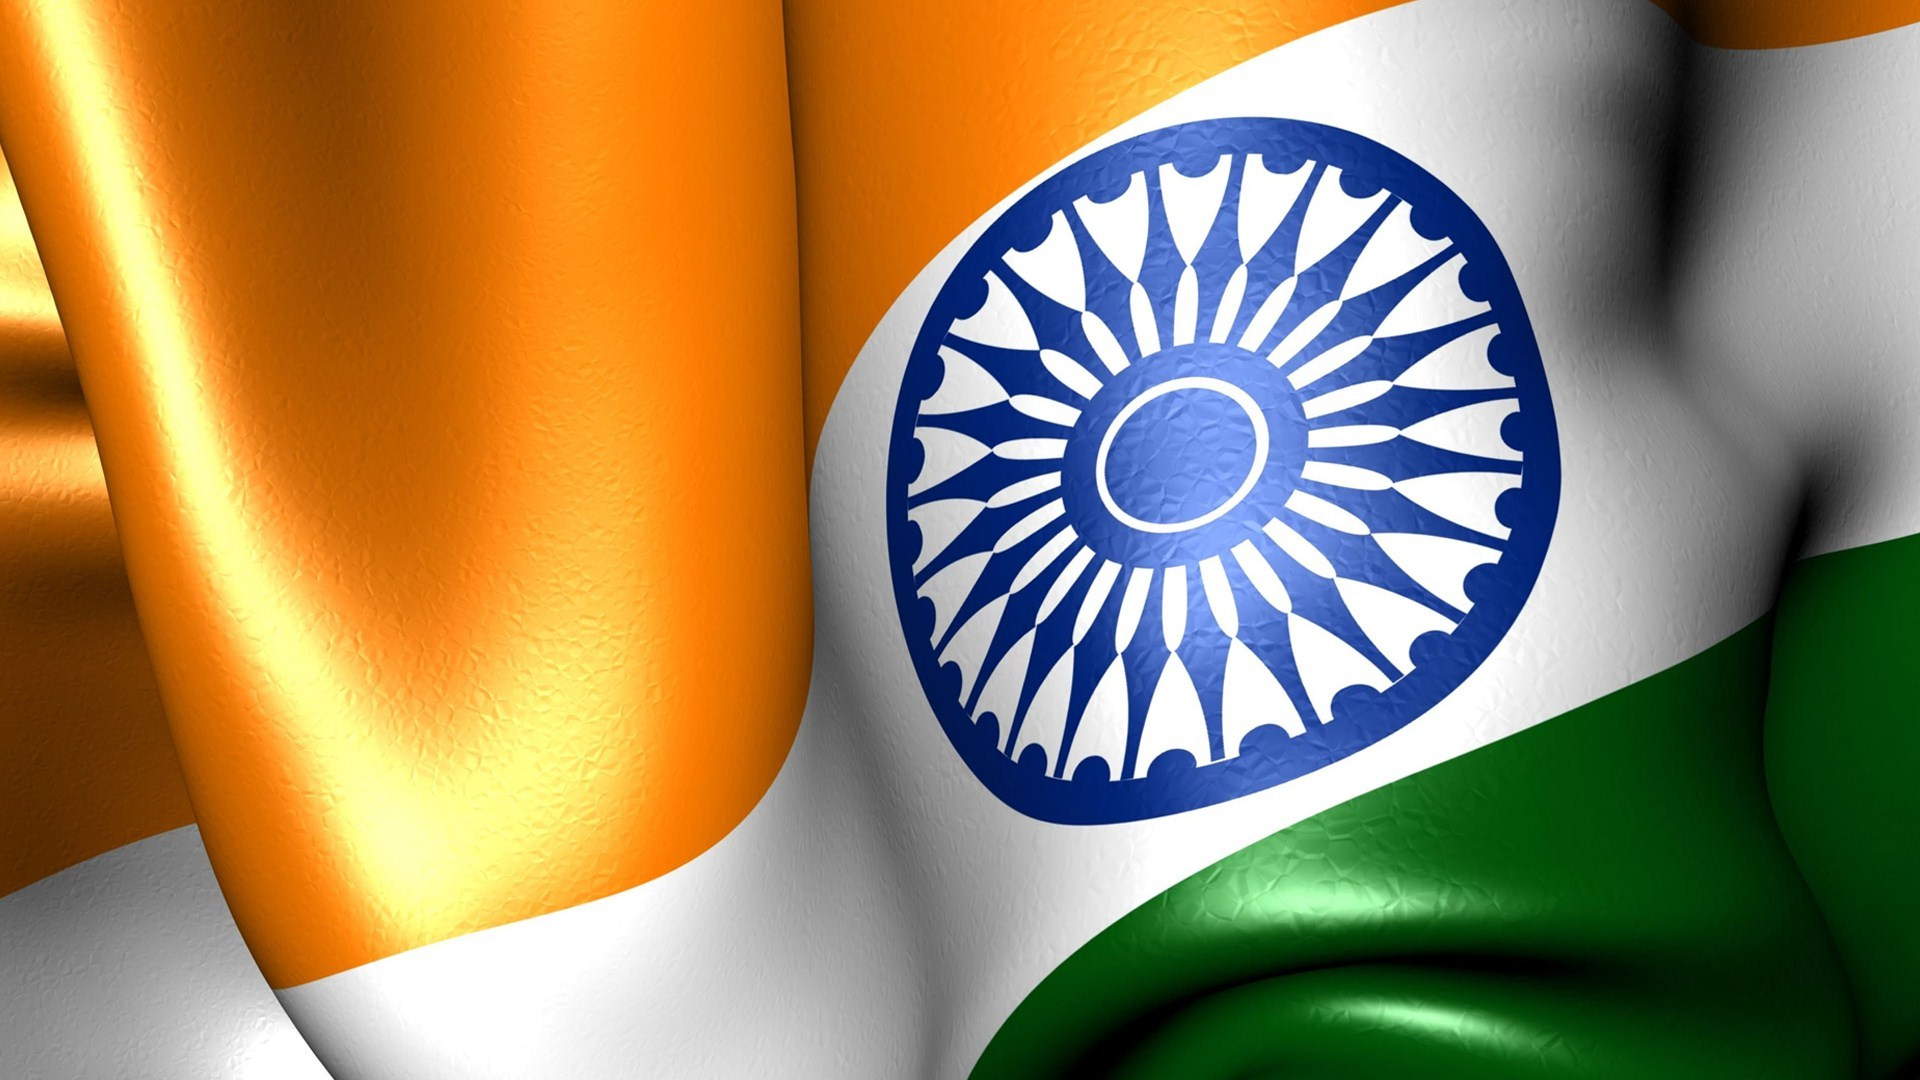 Indian Flag Images Hd720p: Indian Flag Images, Photos, Pictures, And Wallpapers